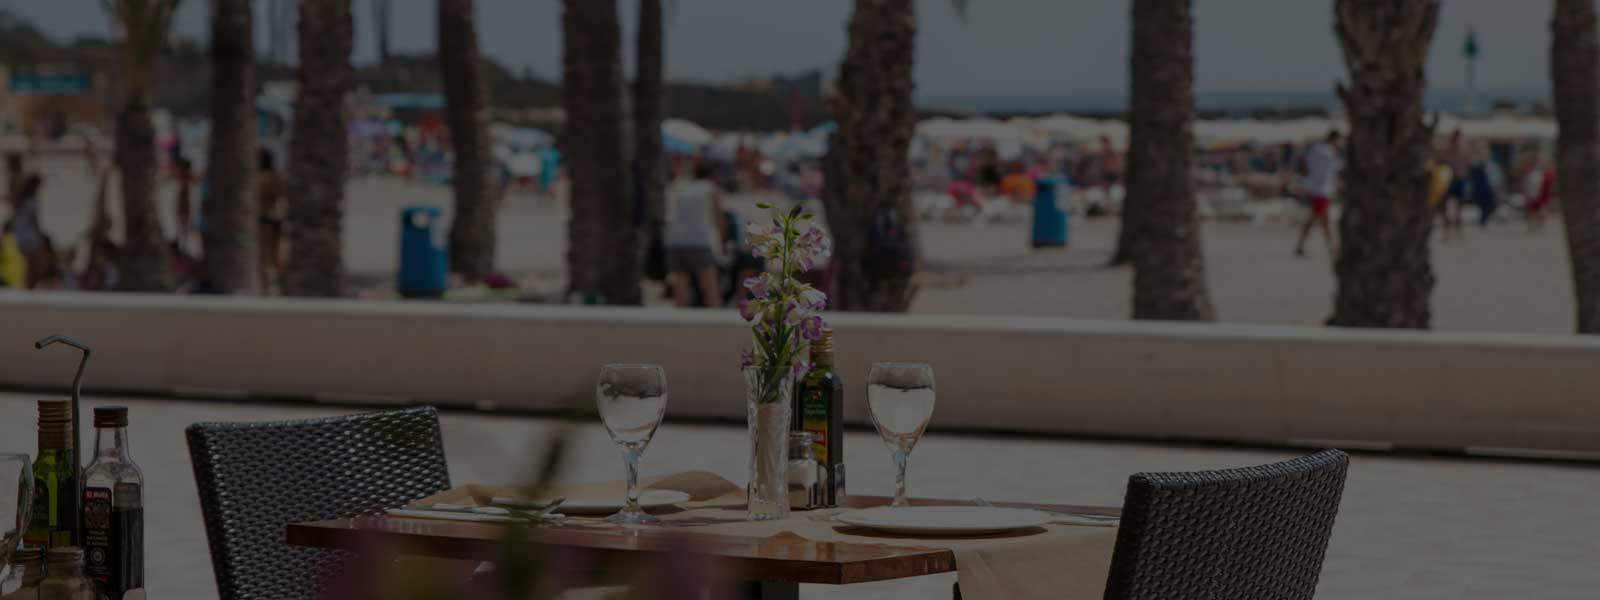 Restaurante Posidonia on El Arenal beach